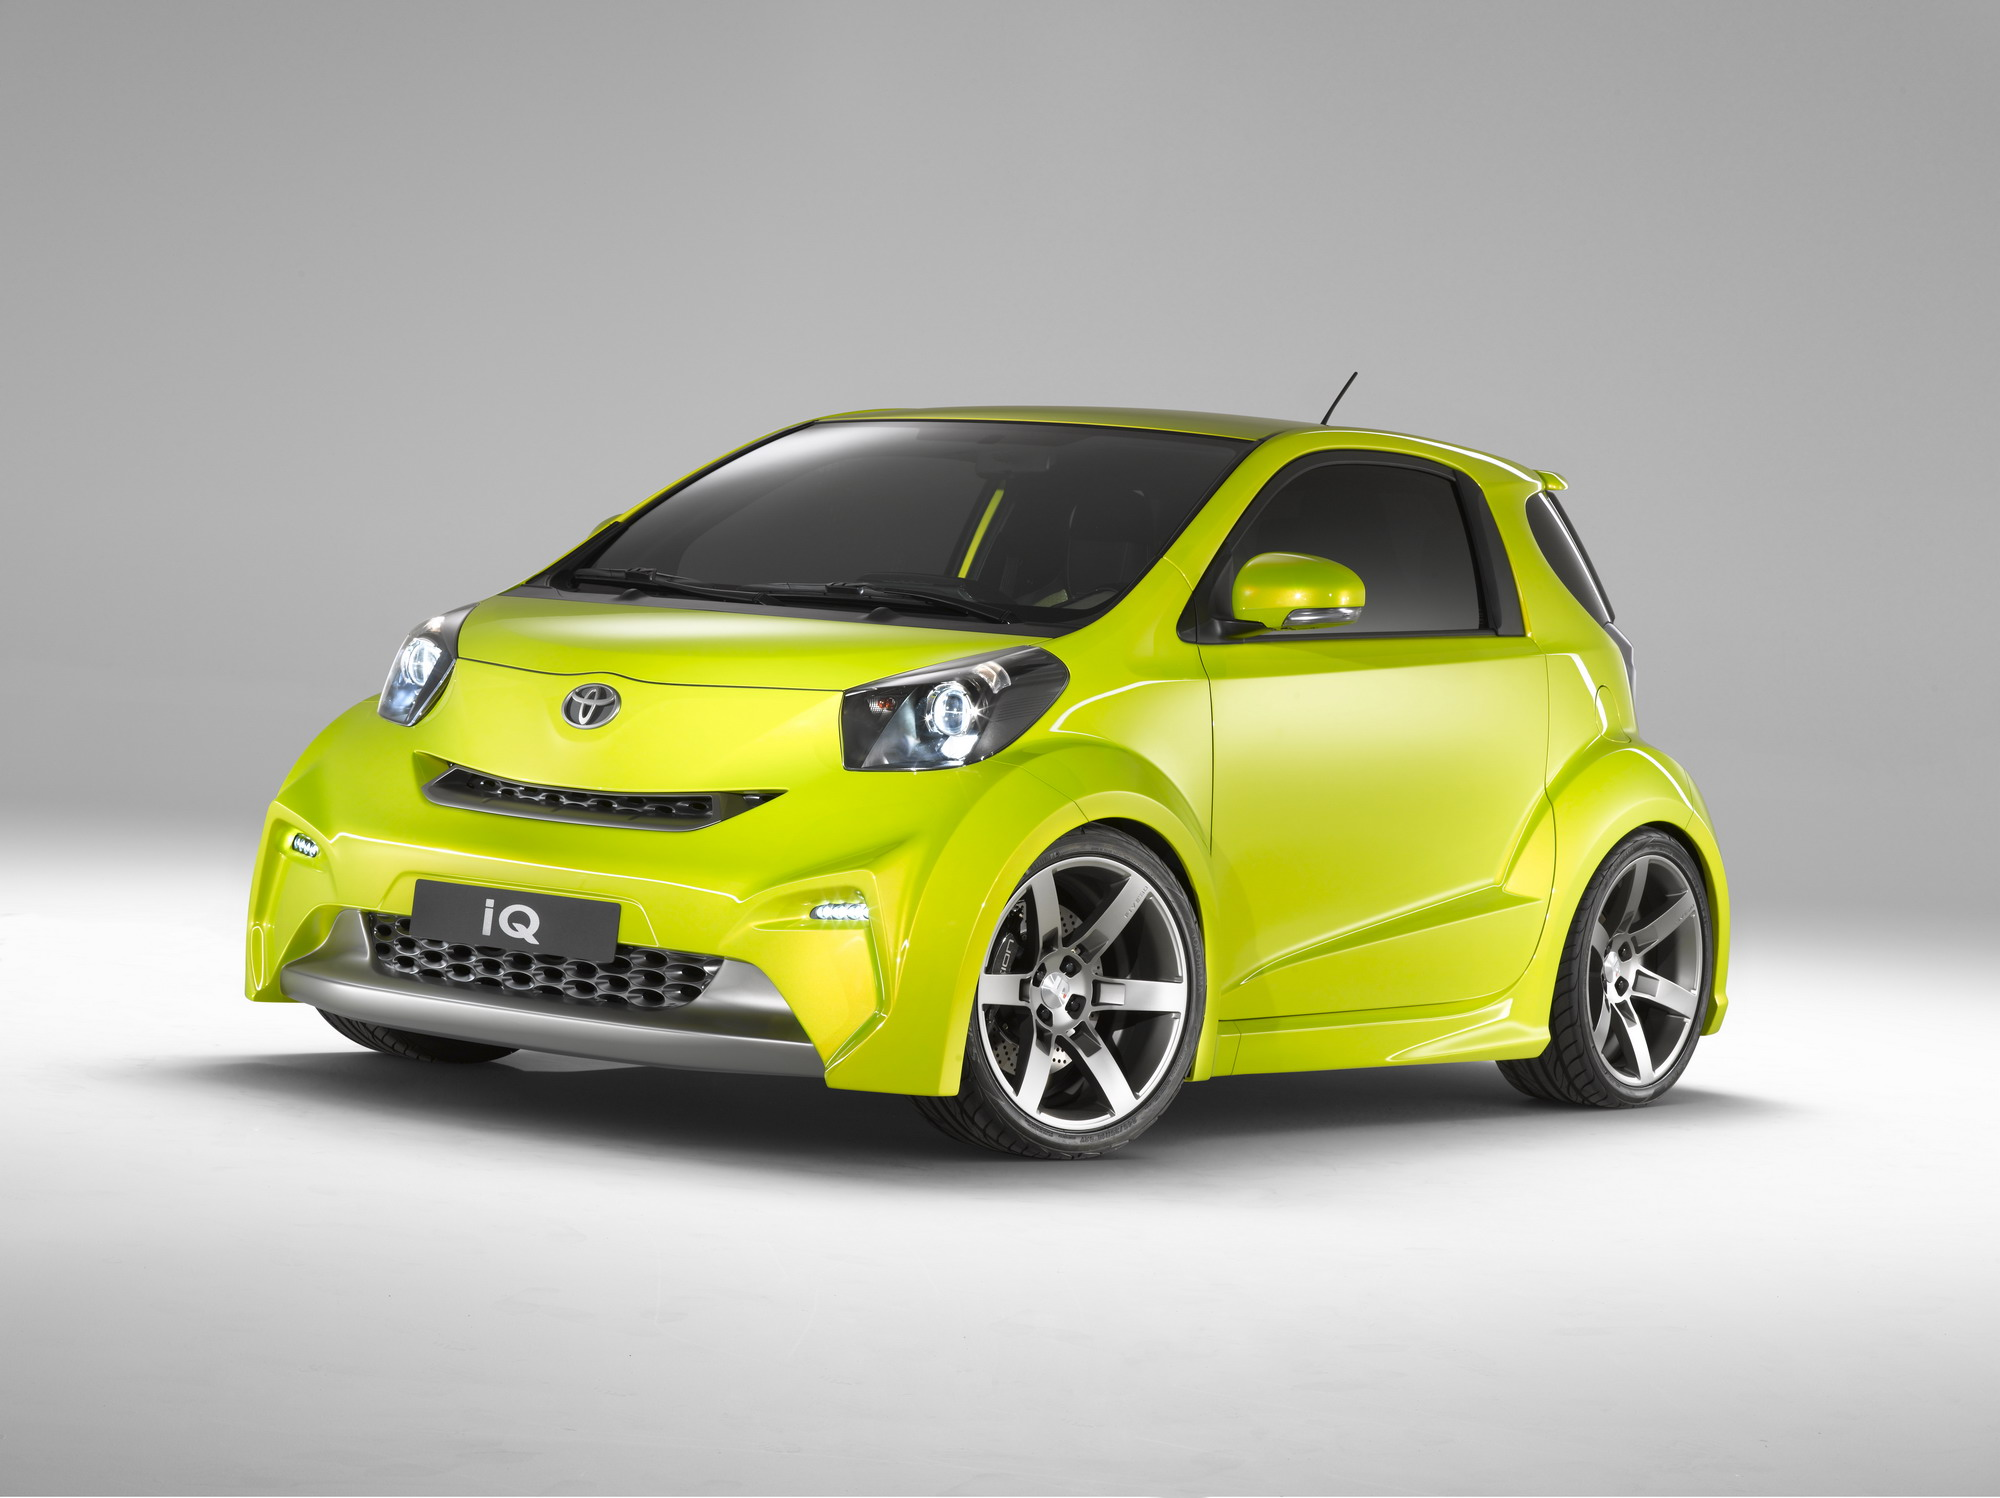 2009 toyota iq for sports and iq collection review top speed. Black Bedroom Furniture Sets. Home Design Ideas